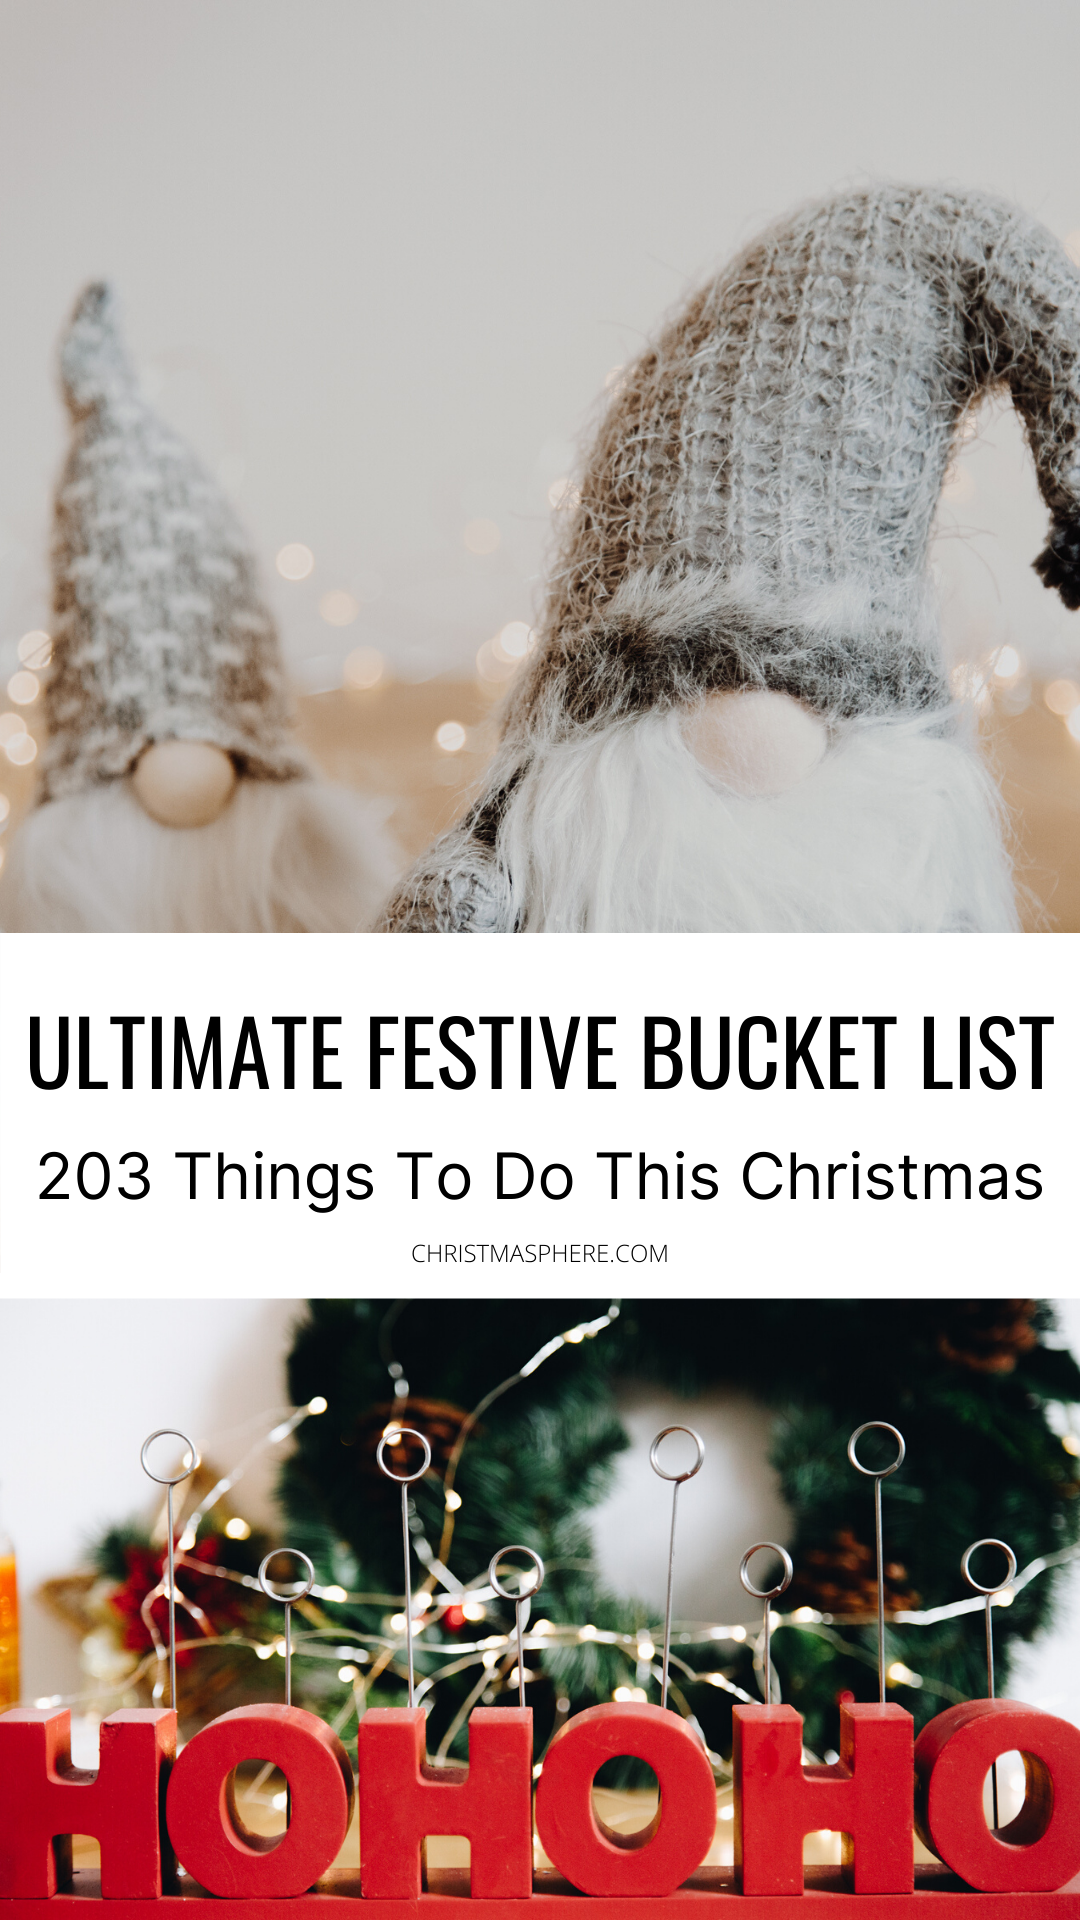 Free Download Ultimate Festive Bucket List 203 Things To Do This Christmas In 2020 Christmas Gathering Christmas Planning Christmas Events